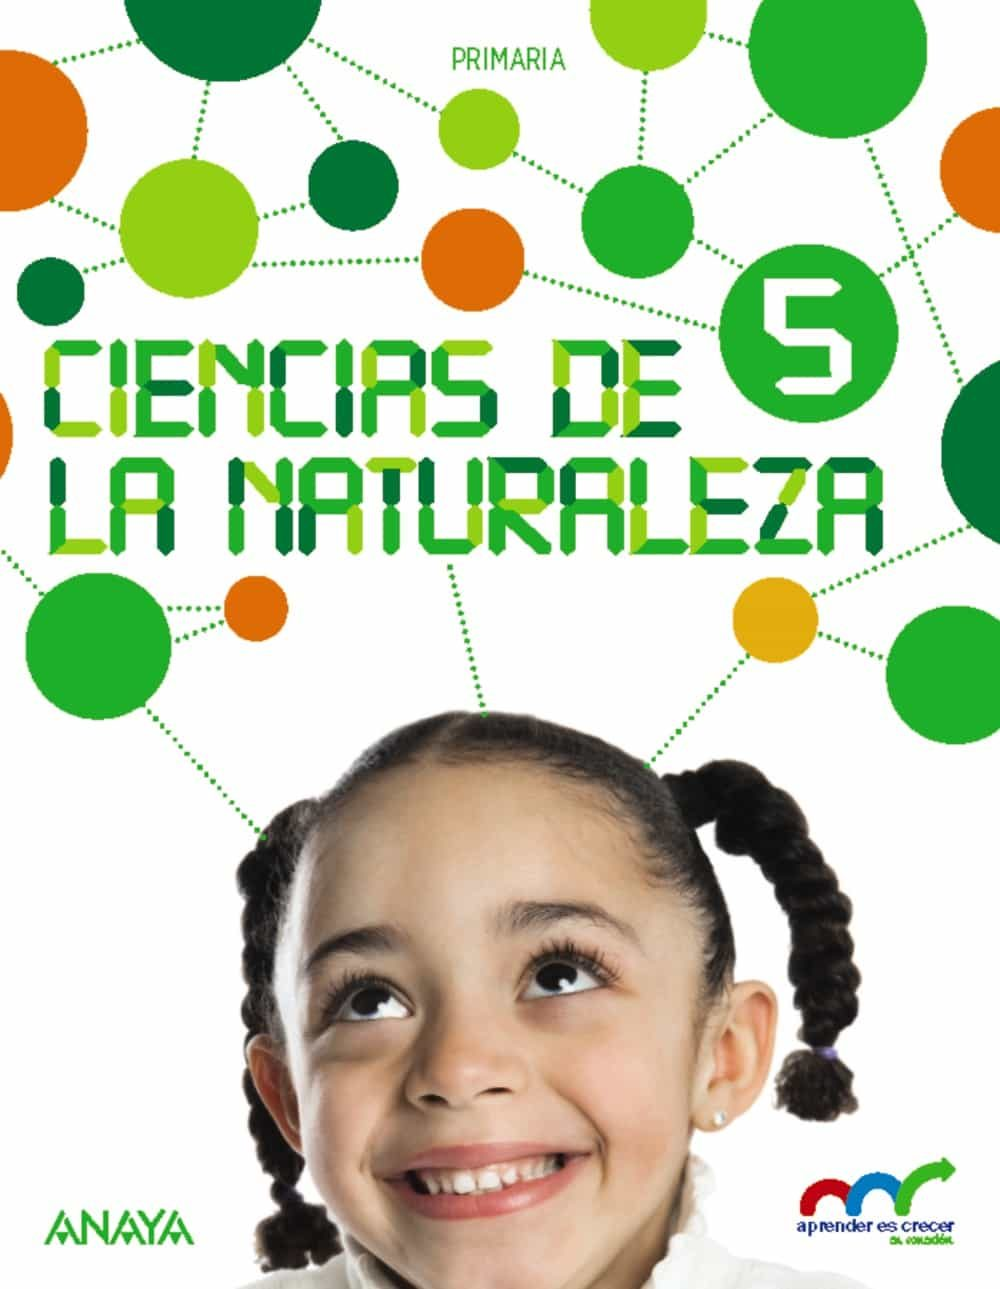 CIENCIAS NATURALES 5 PRIMARIA EBOOK DOWNLOAD